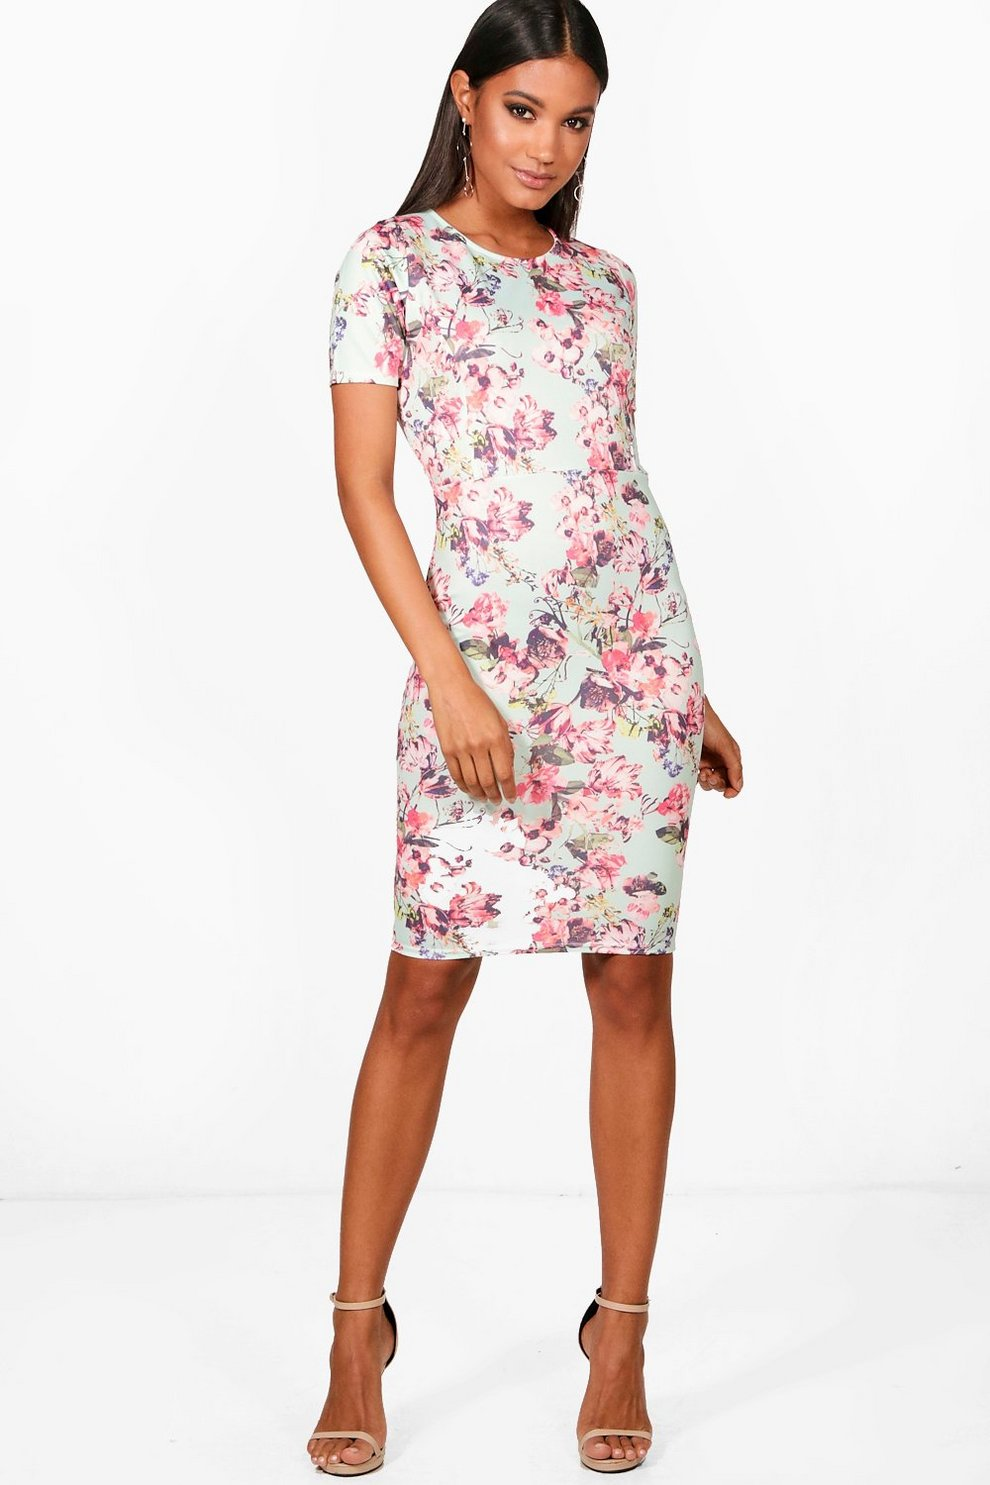 Boohoo Pastel Floral Print Dress Outlet Find Great Best Seller Clearance Exclusive Manchester Sale Online mPUSs